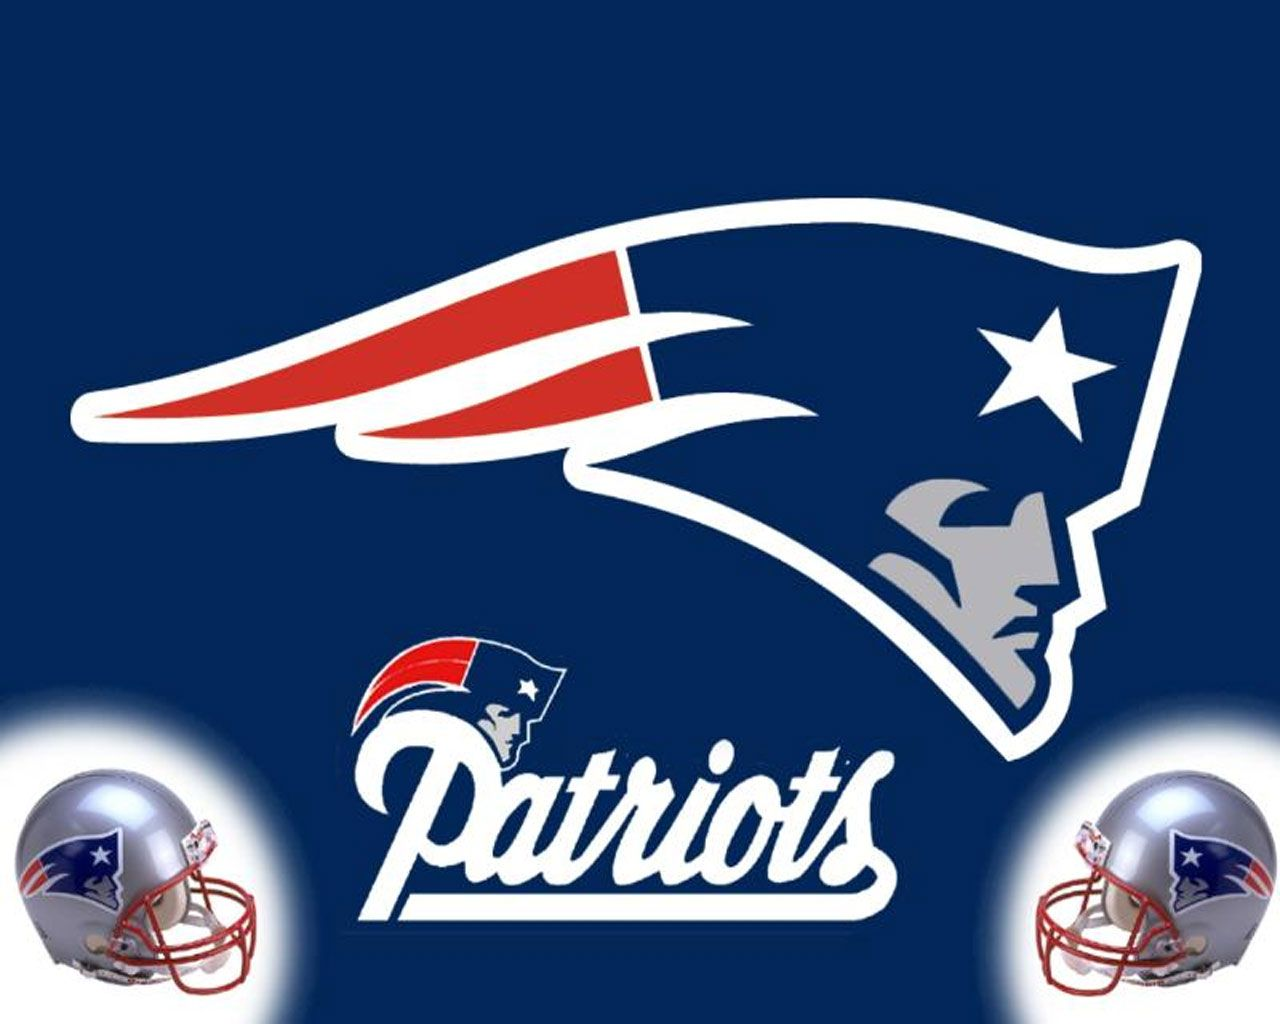 Made The 6x Champions Logo Into An Iphone Wallpaper New England Patriots Logo New England Patriots Cheerleaders New England Patriots Wallpaper